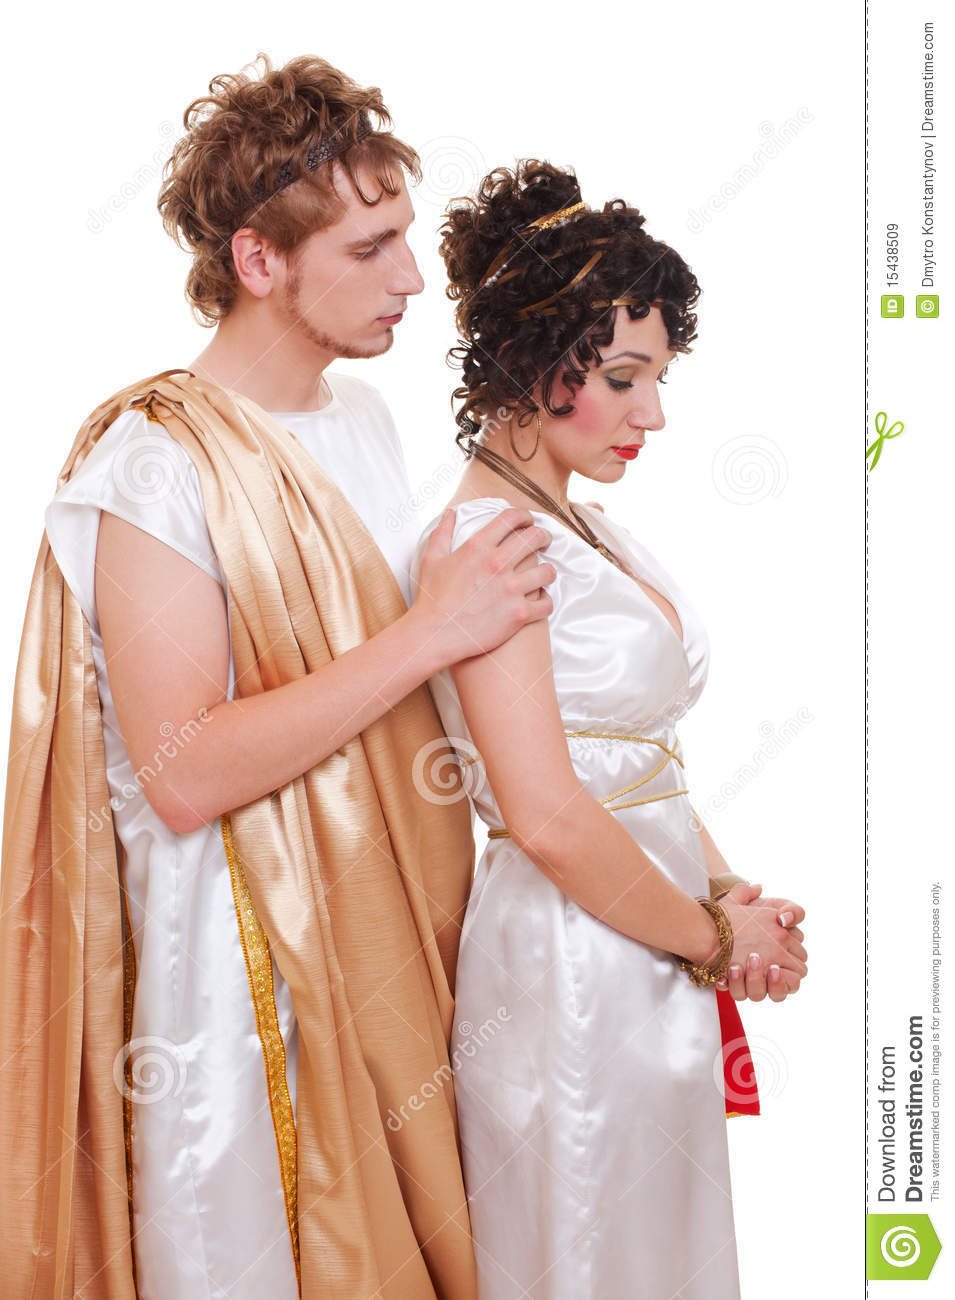 Sad couple in Greek style